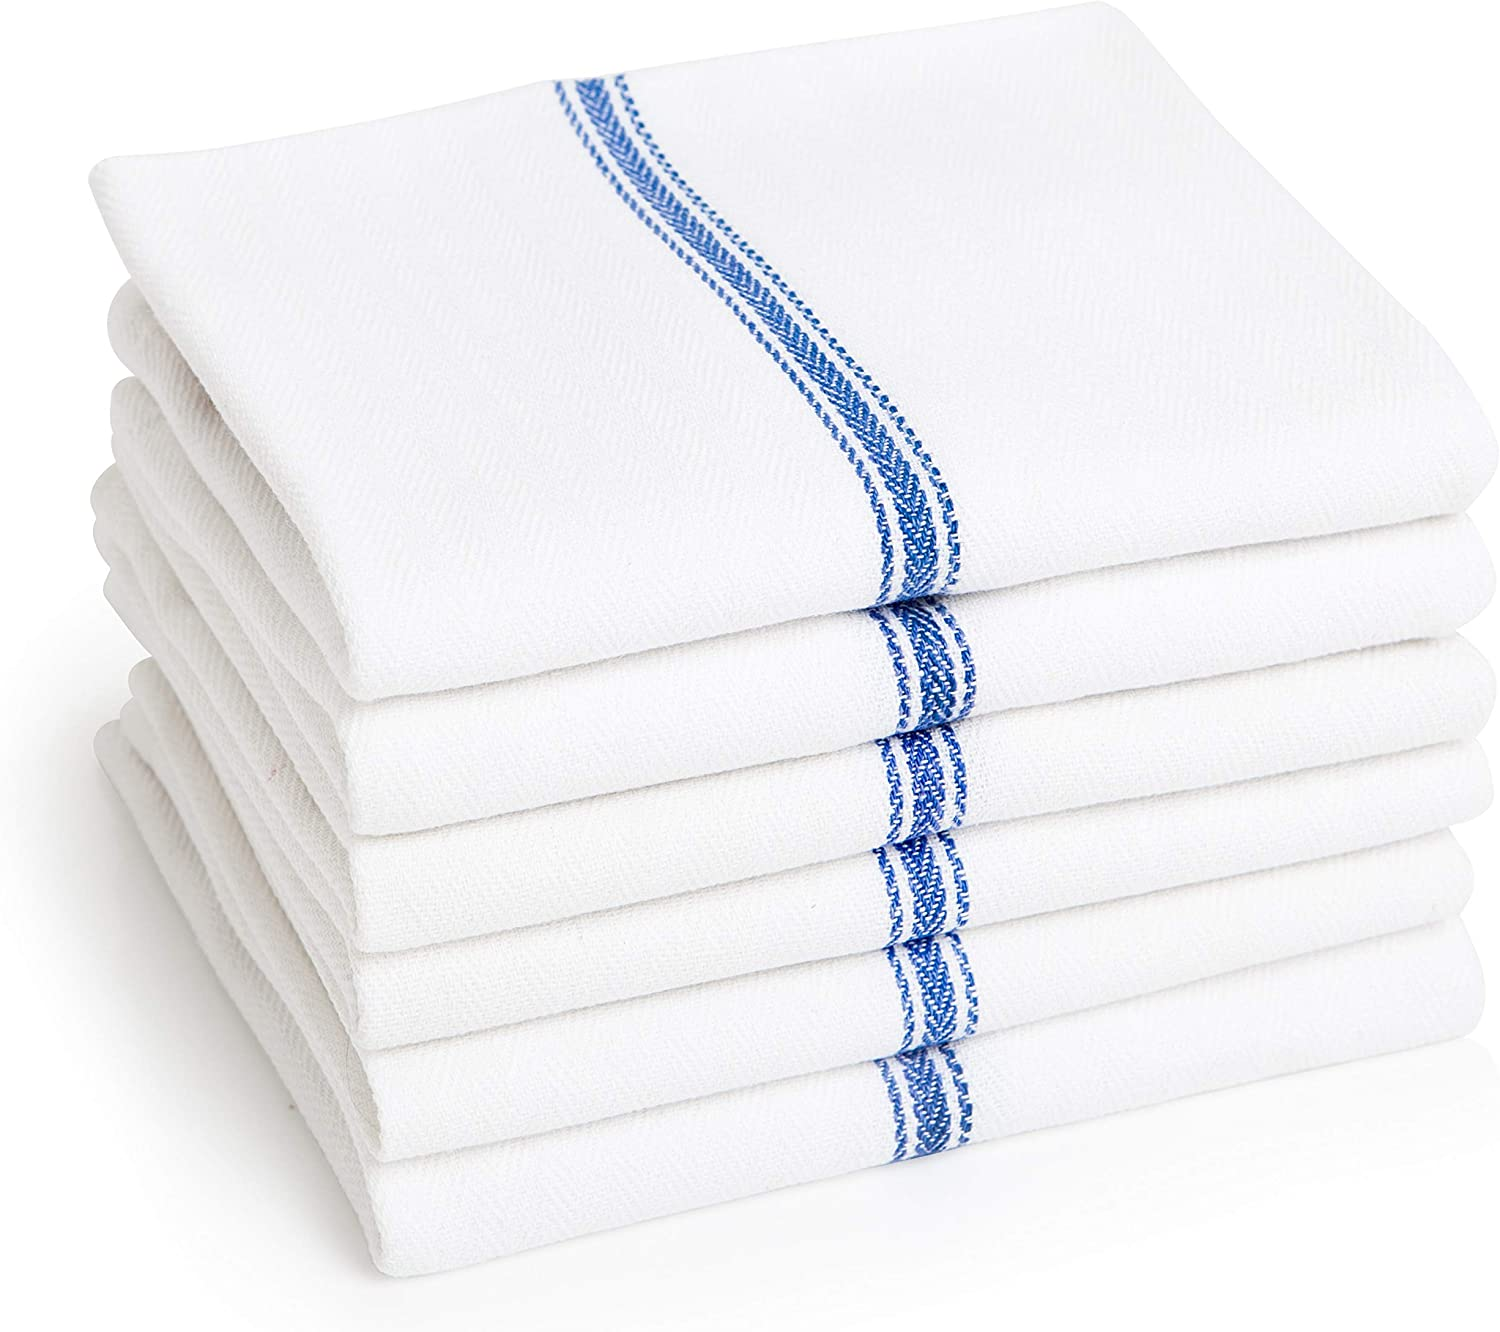 Premia Kitchen Free shipping on posting reviews Dish Deluxe 6 Units Absorbent 100% Cotton Herr